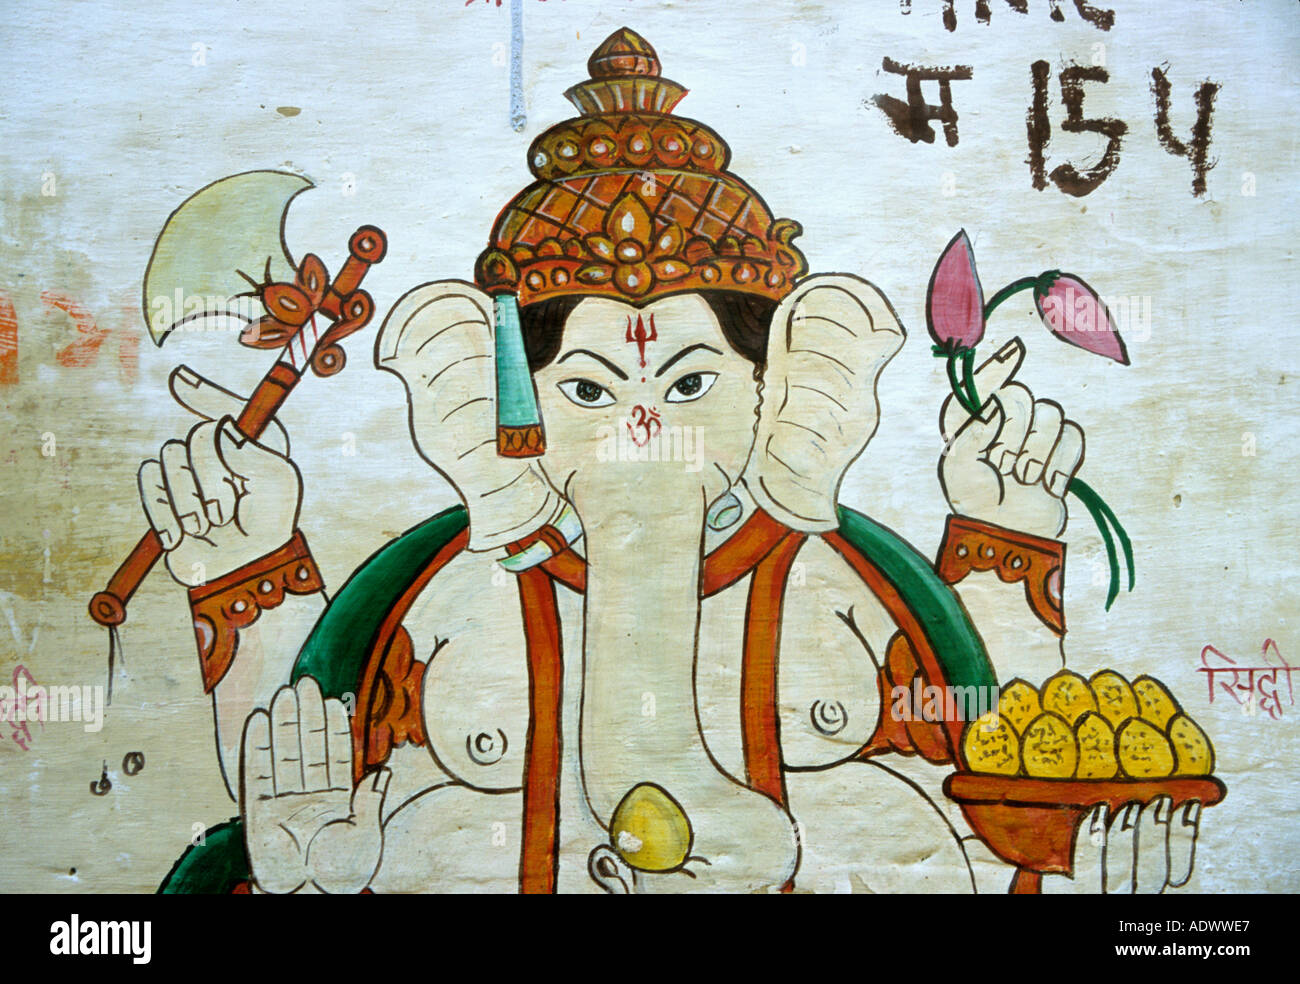 Wall Painting Of Ganesha The Elephant God In Jaisalmer Rajasthan